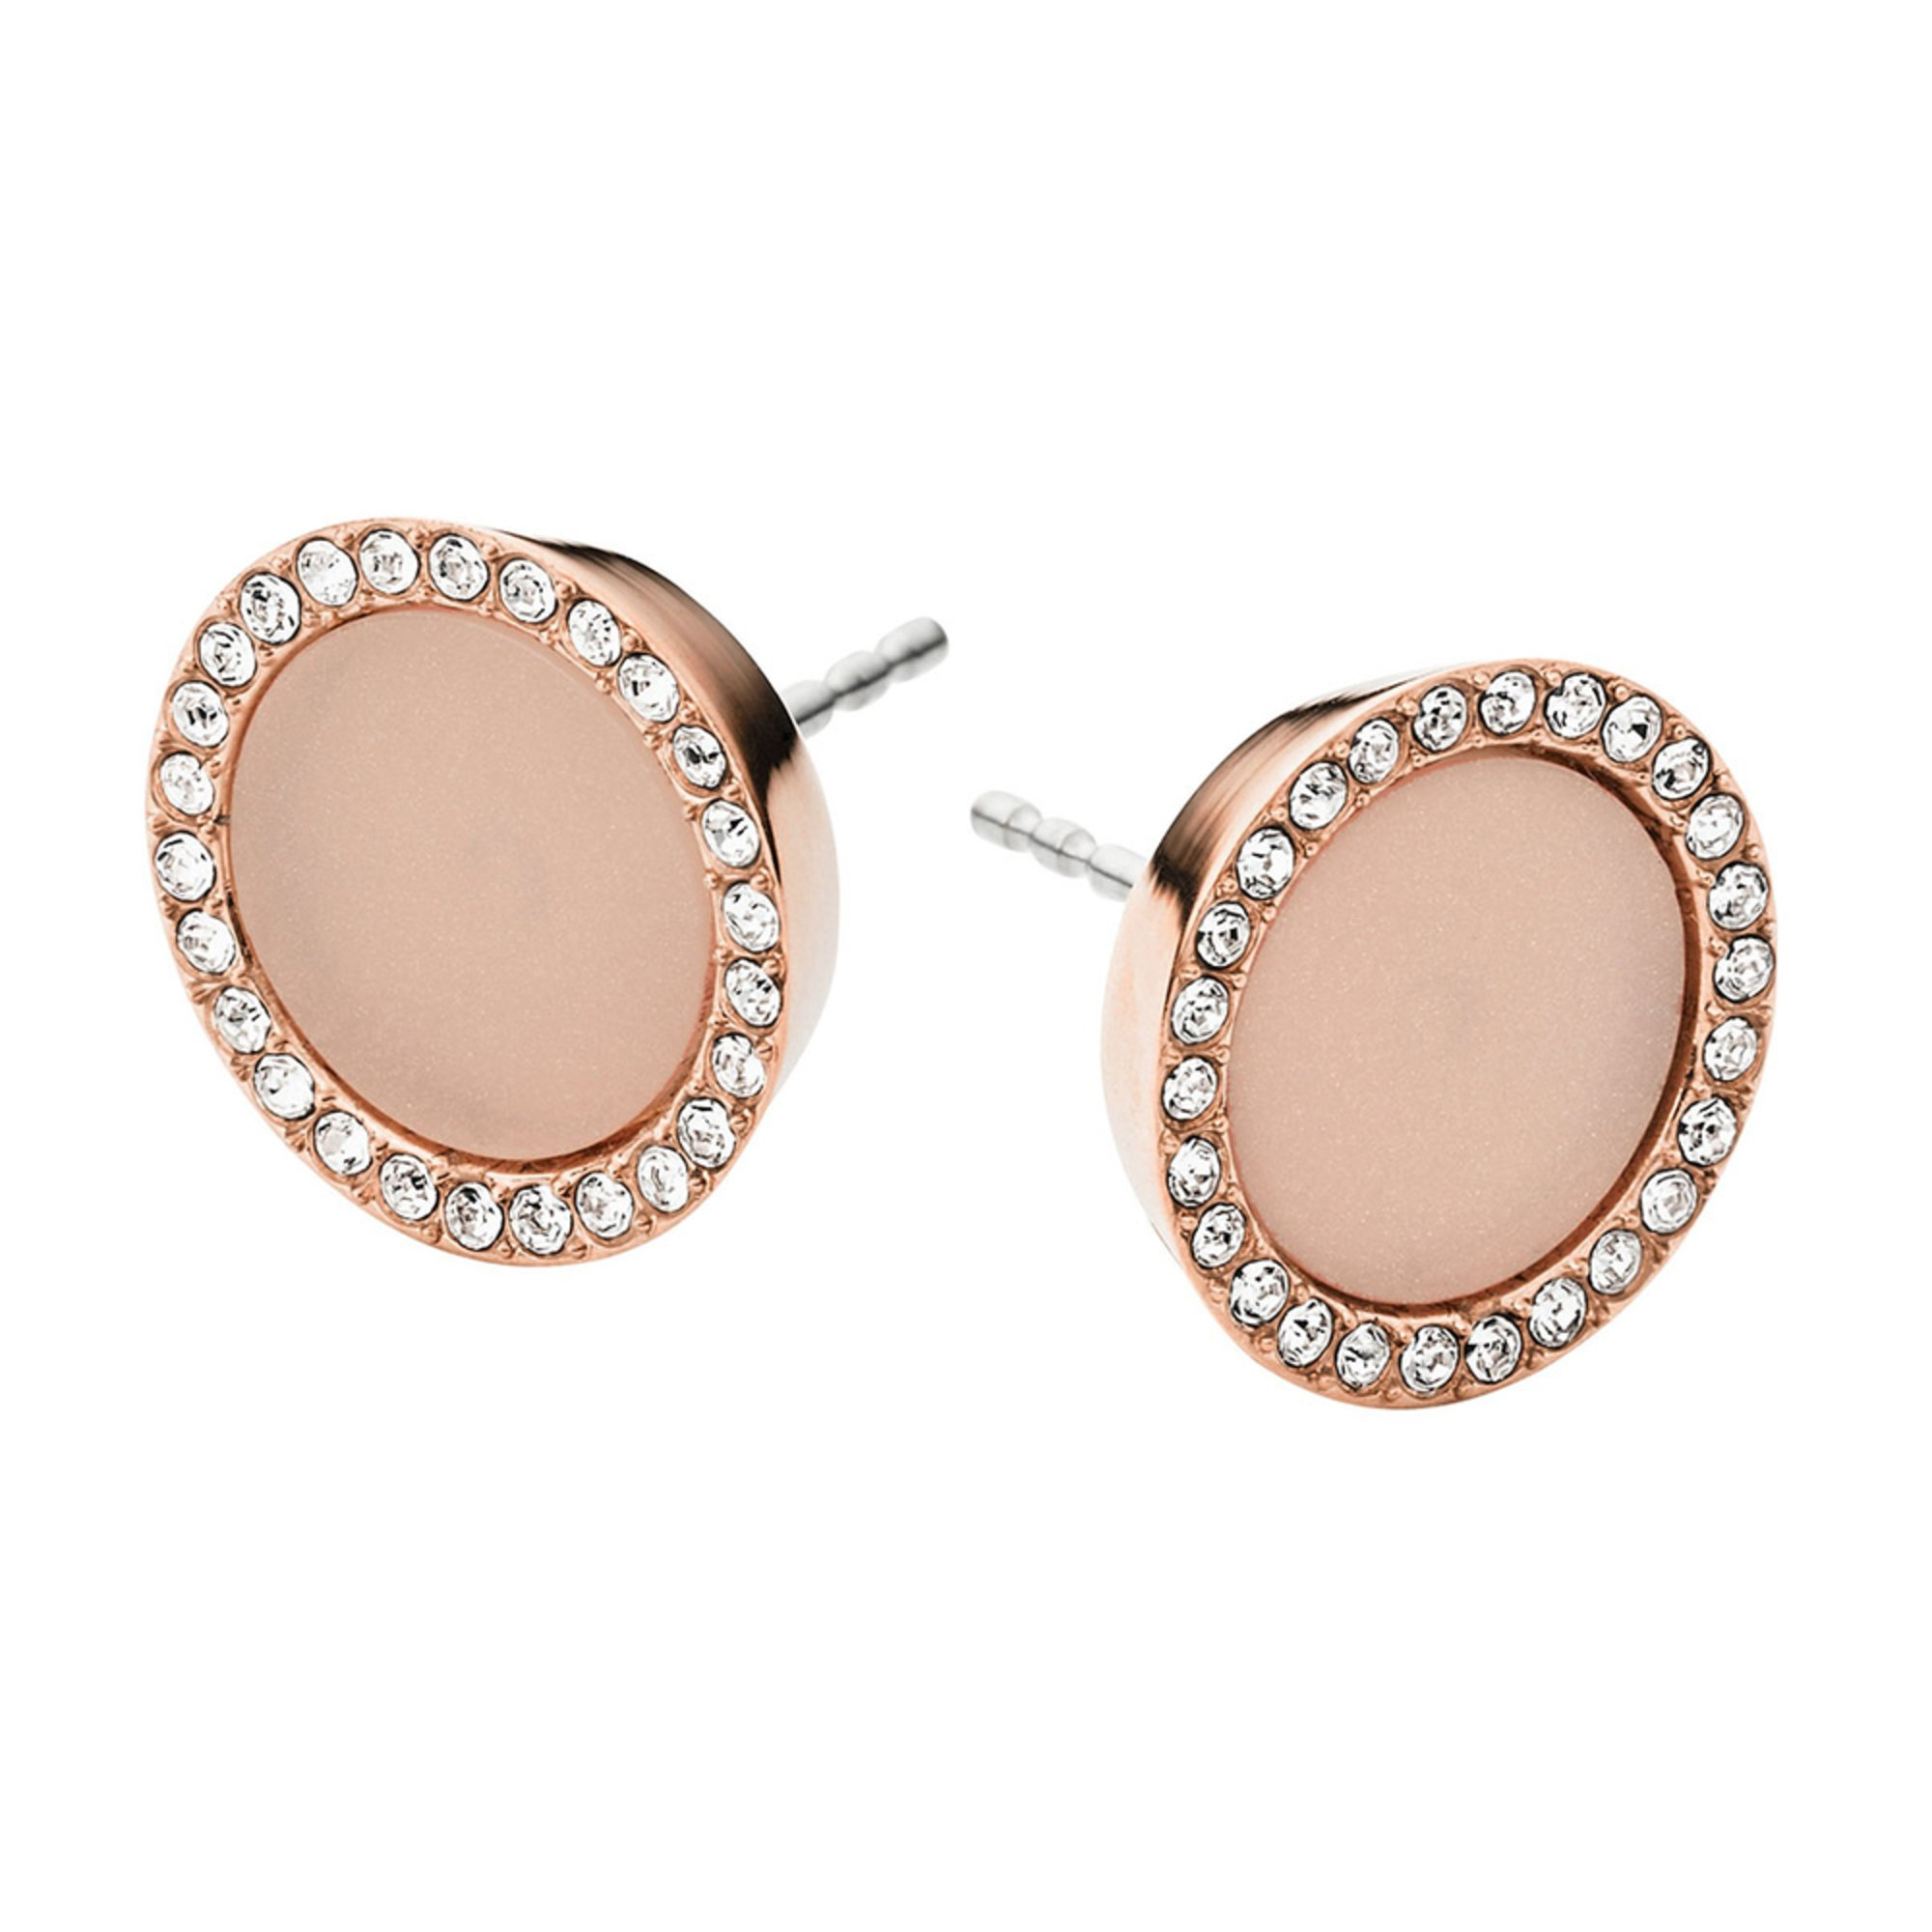 michael kors rose gold tone blush acetate studs fashion earrings jewelry watches shop. Black Bedroom Furniture Sets. Home Design Ideas